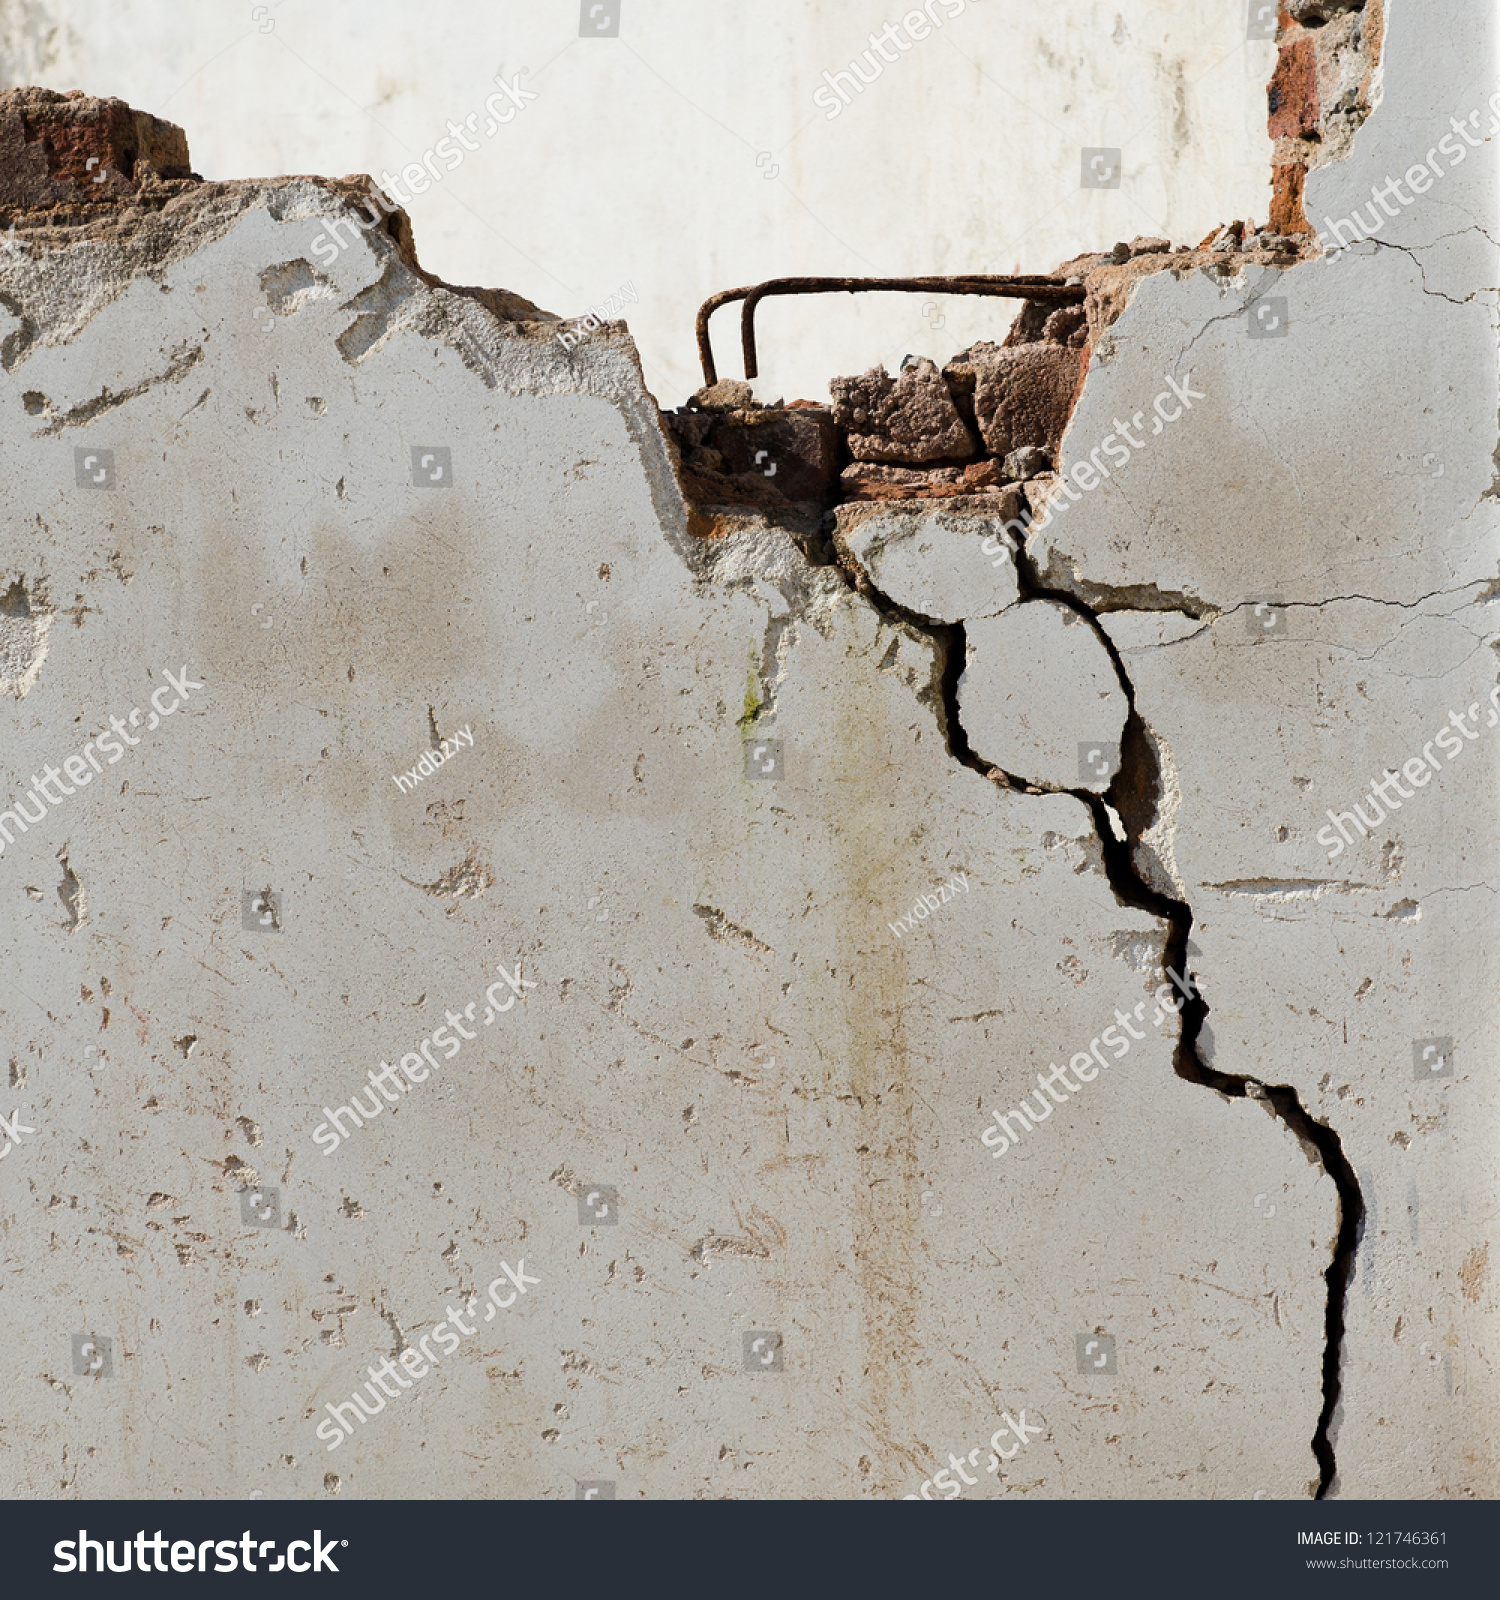 Cracked Concrete Wall Background Stock Photo 121746361